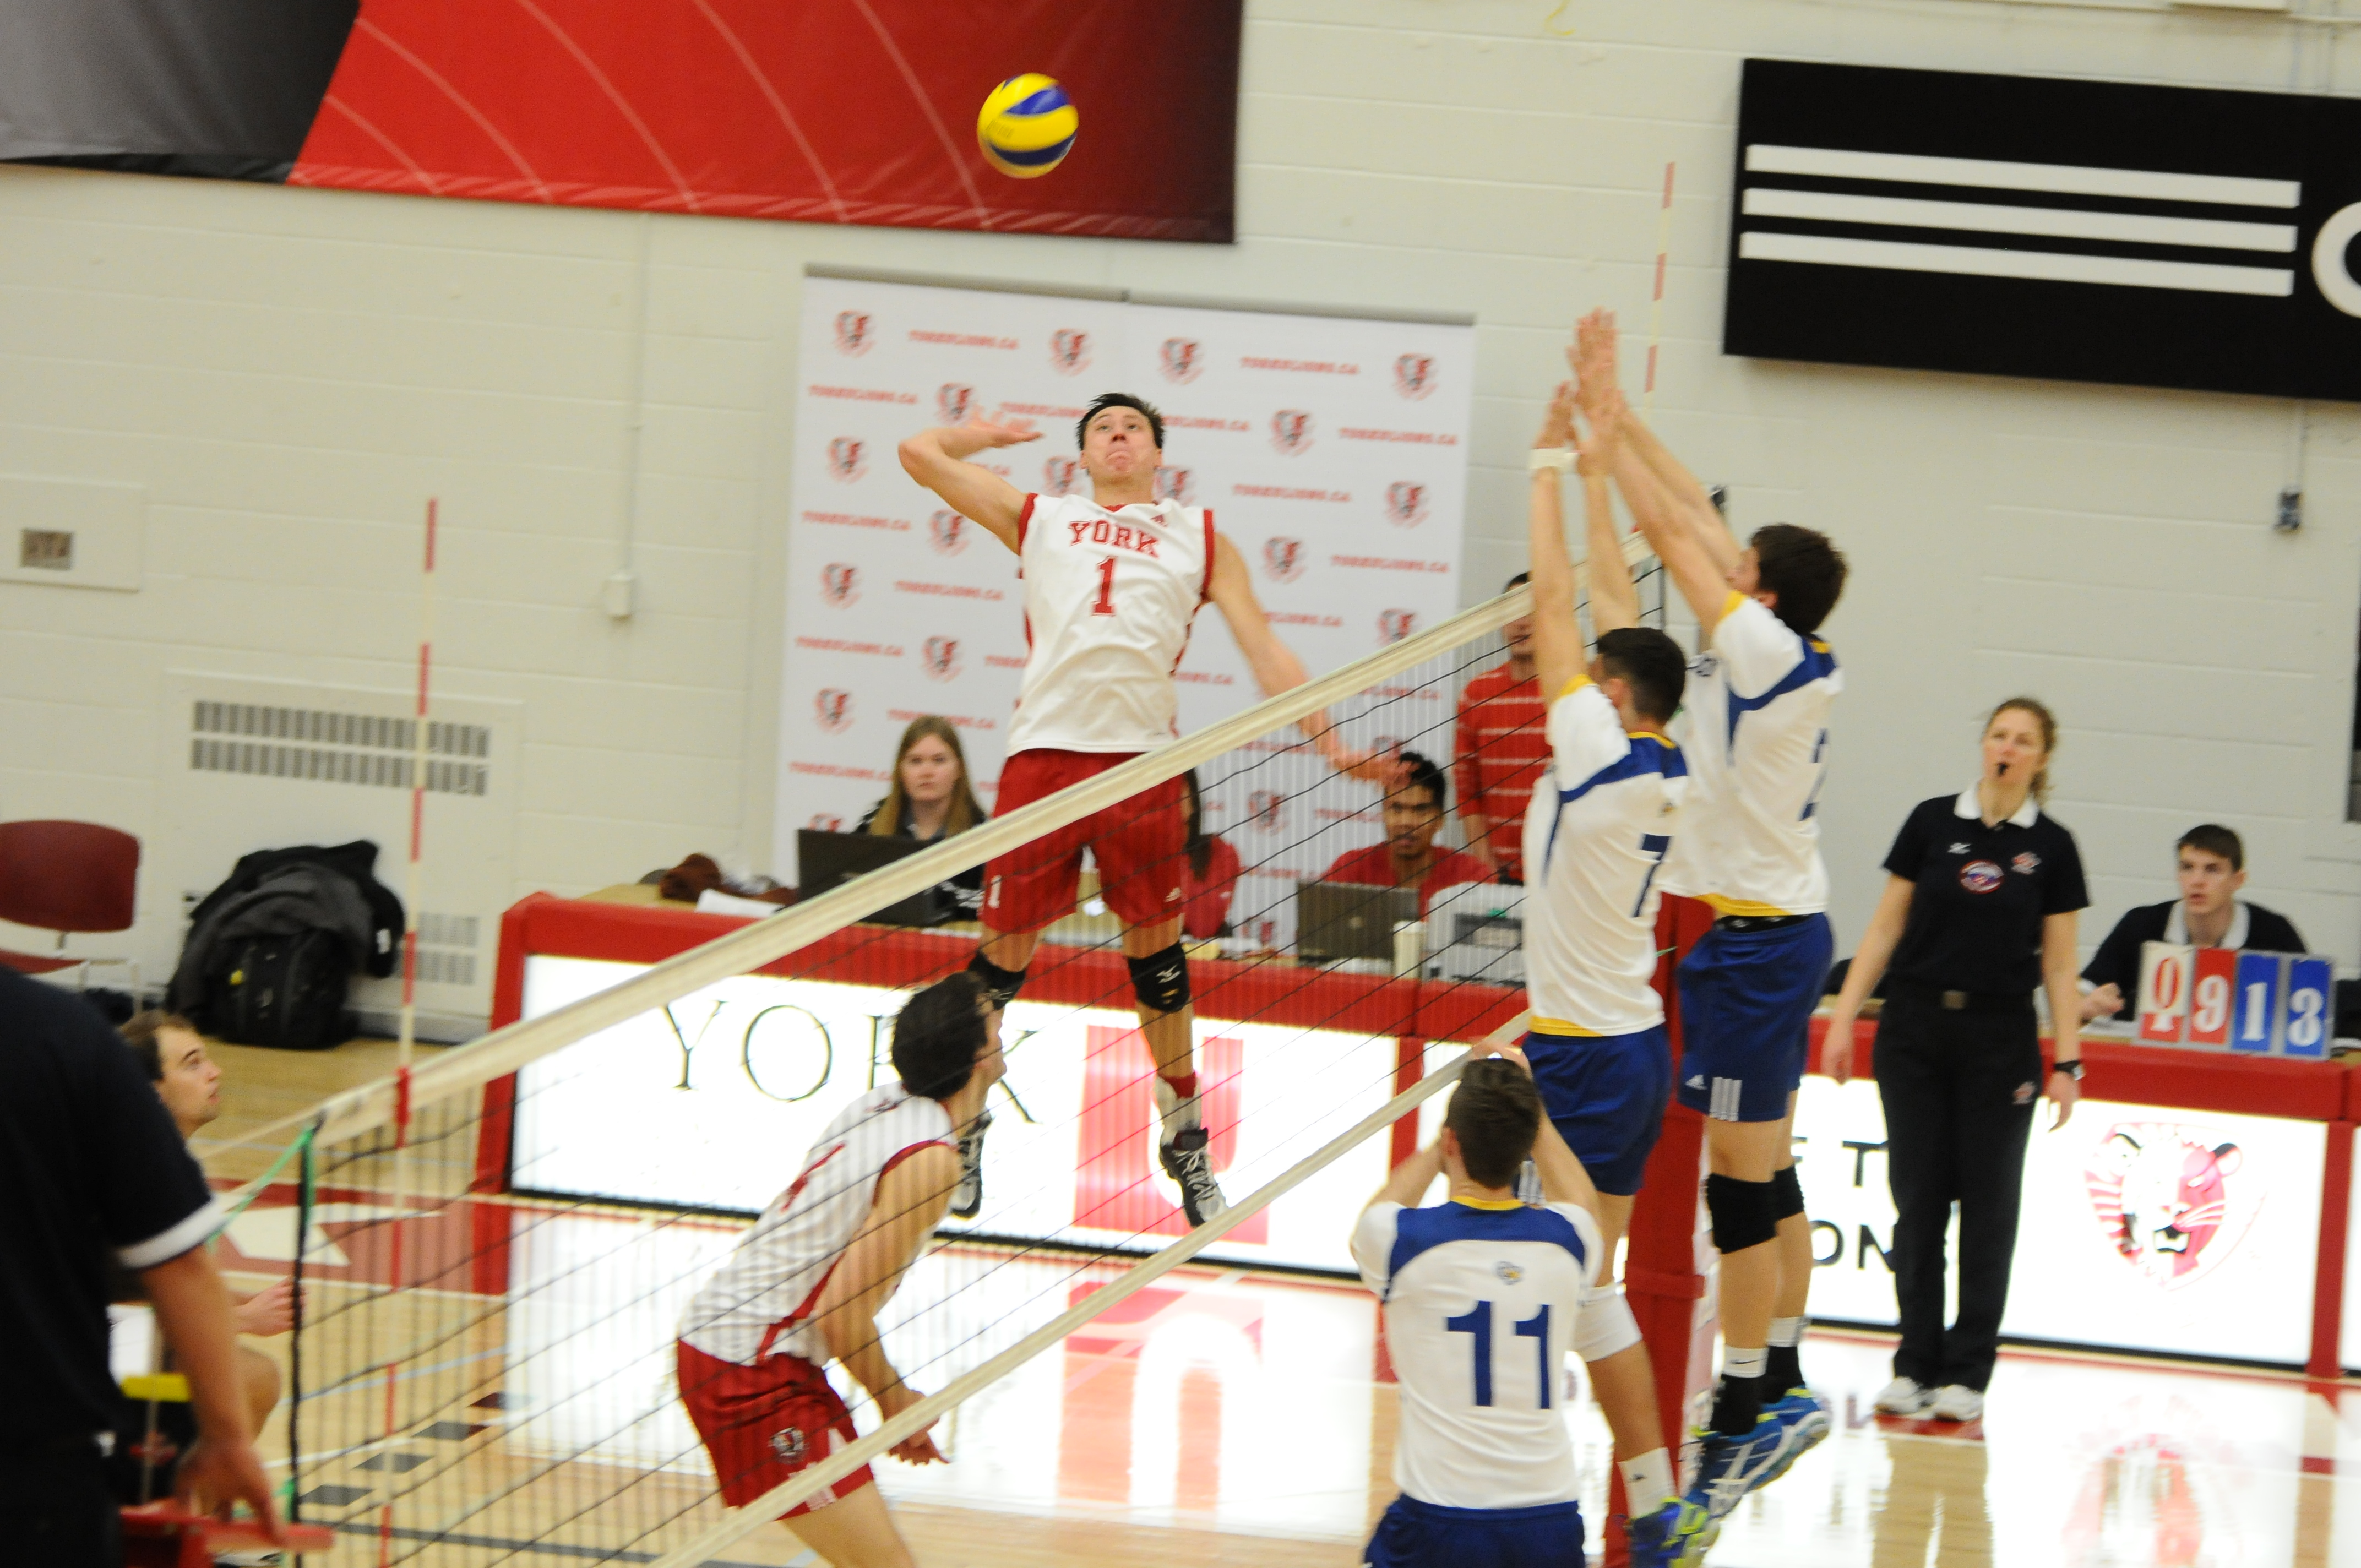 Ray Szeto jumping to return a volley during a game against Ryerson University.